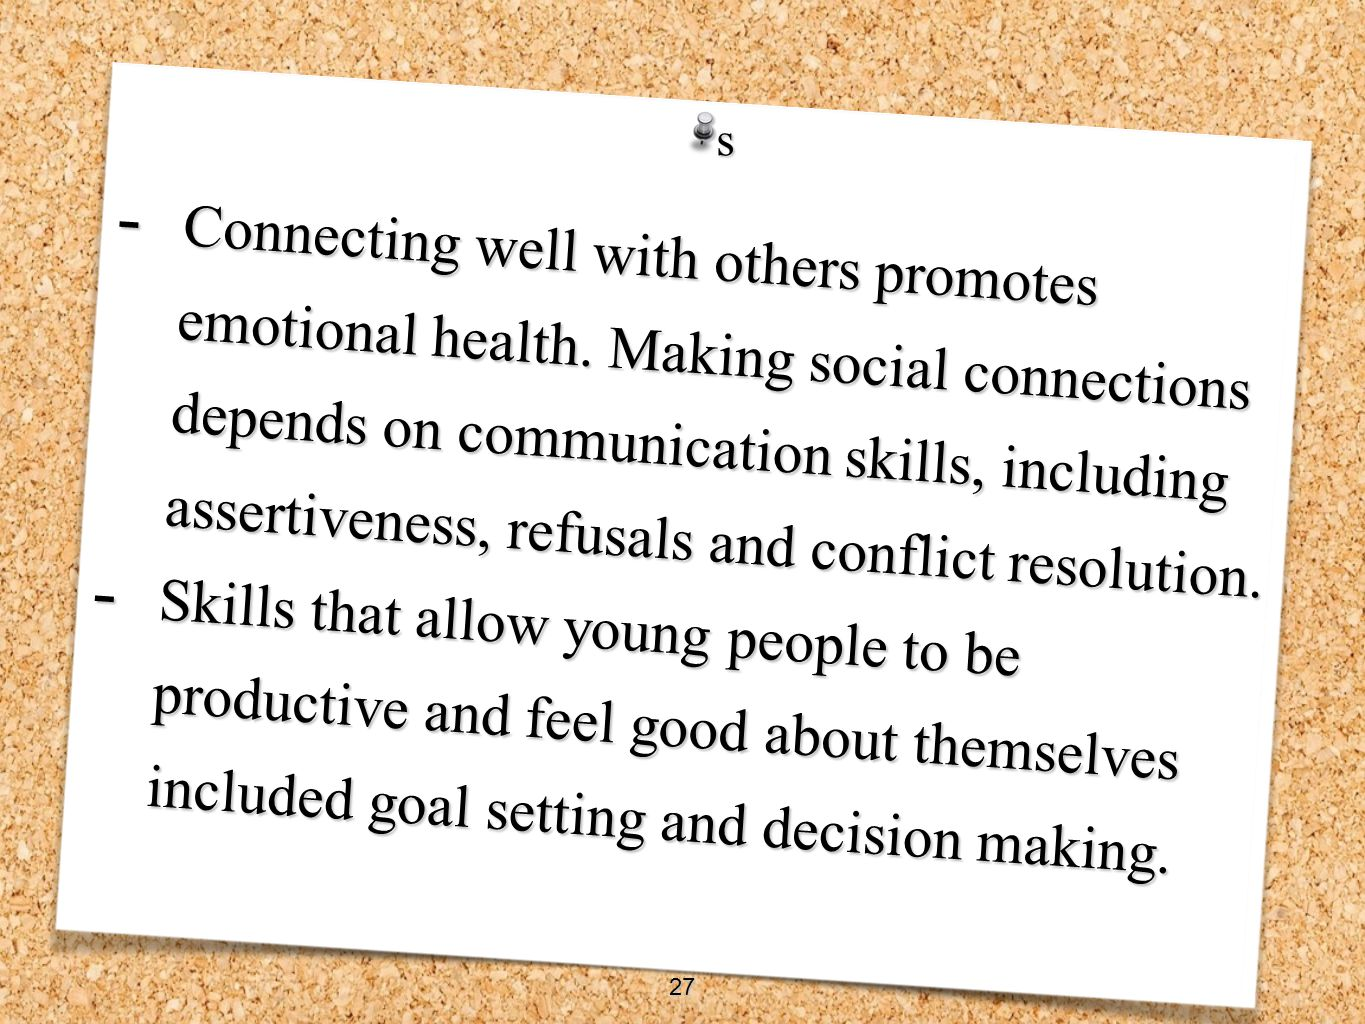 - Connecting well with others promotes emotional health. Making social connections depends on communication skills, including assertiveness, refusals